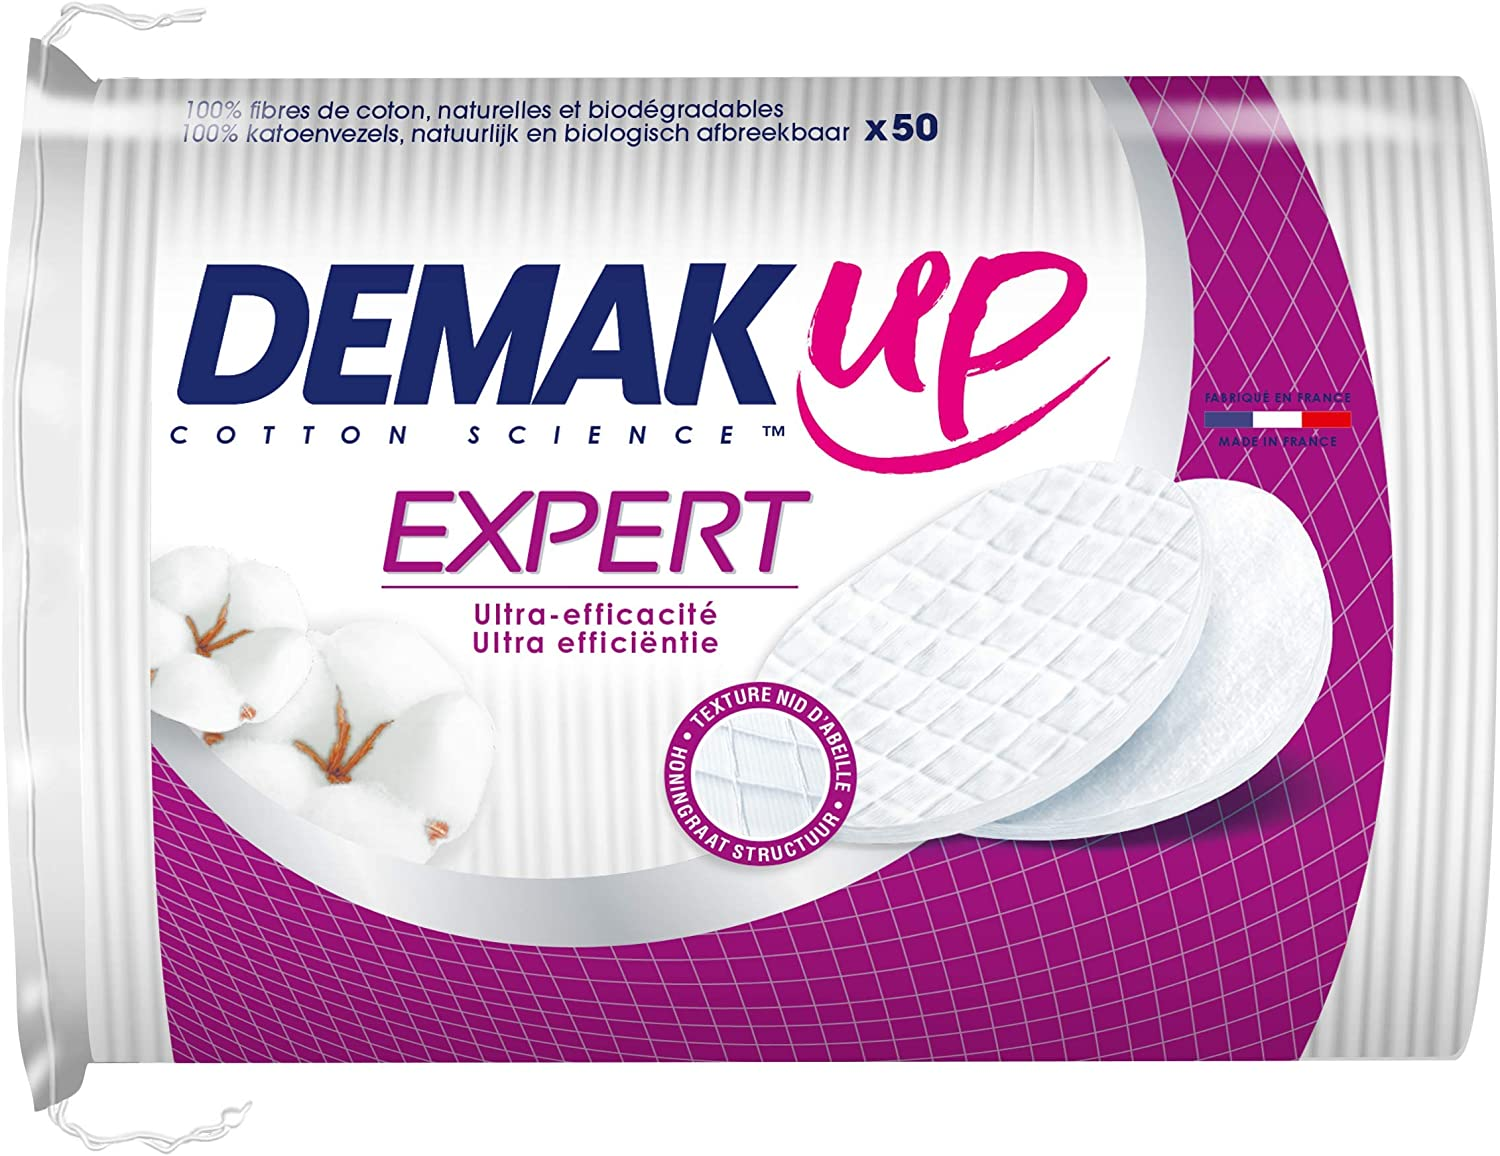 Demak'Up Duo+ - Oval Cotton Pads 4 Make-Up Packs Removing Max 50% OFF for Bombing free shipping o